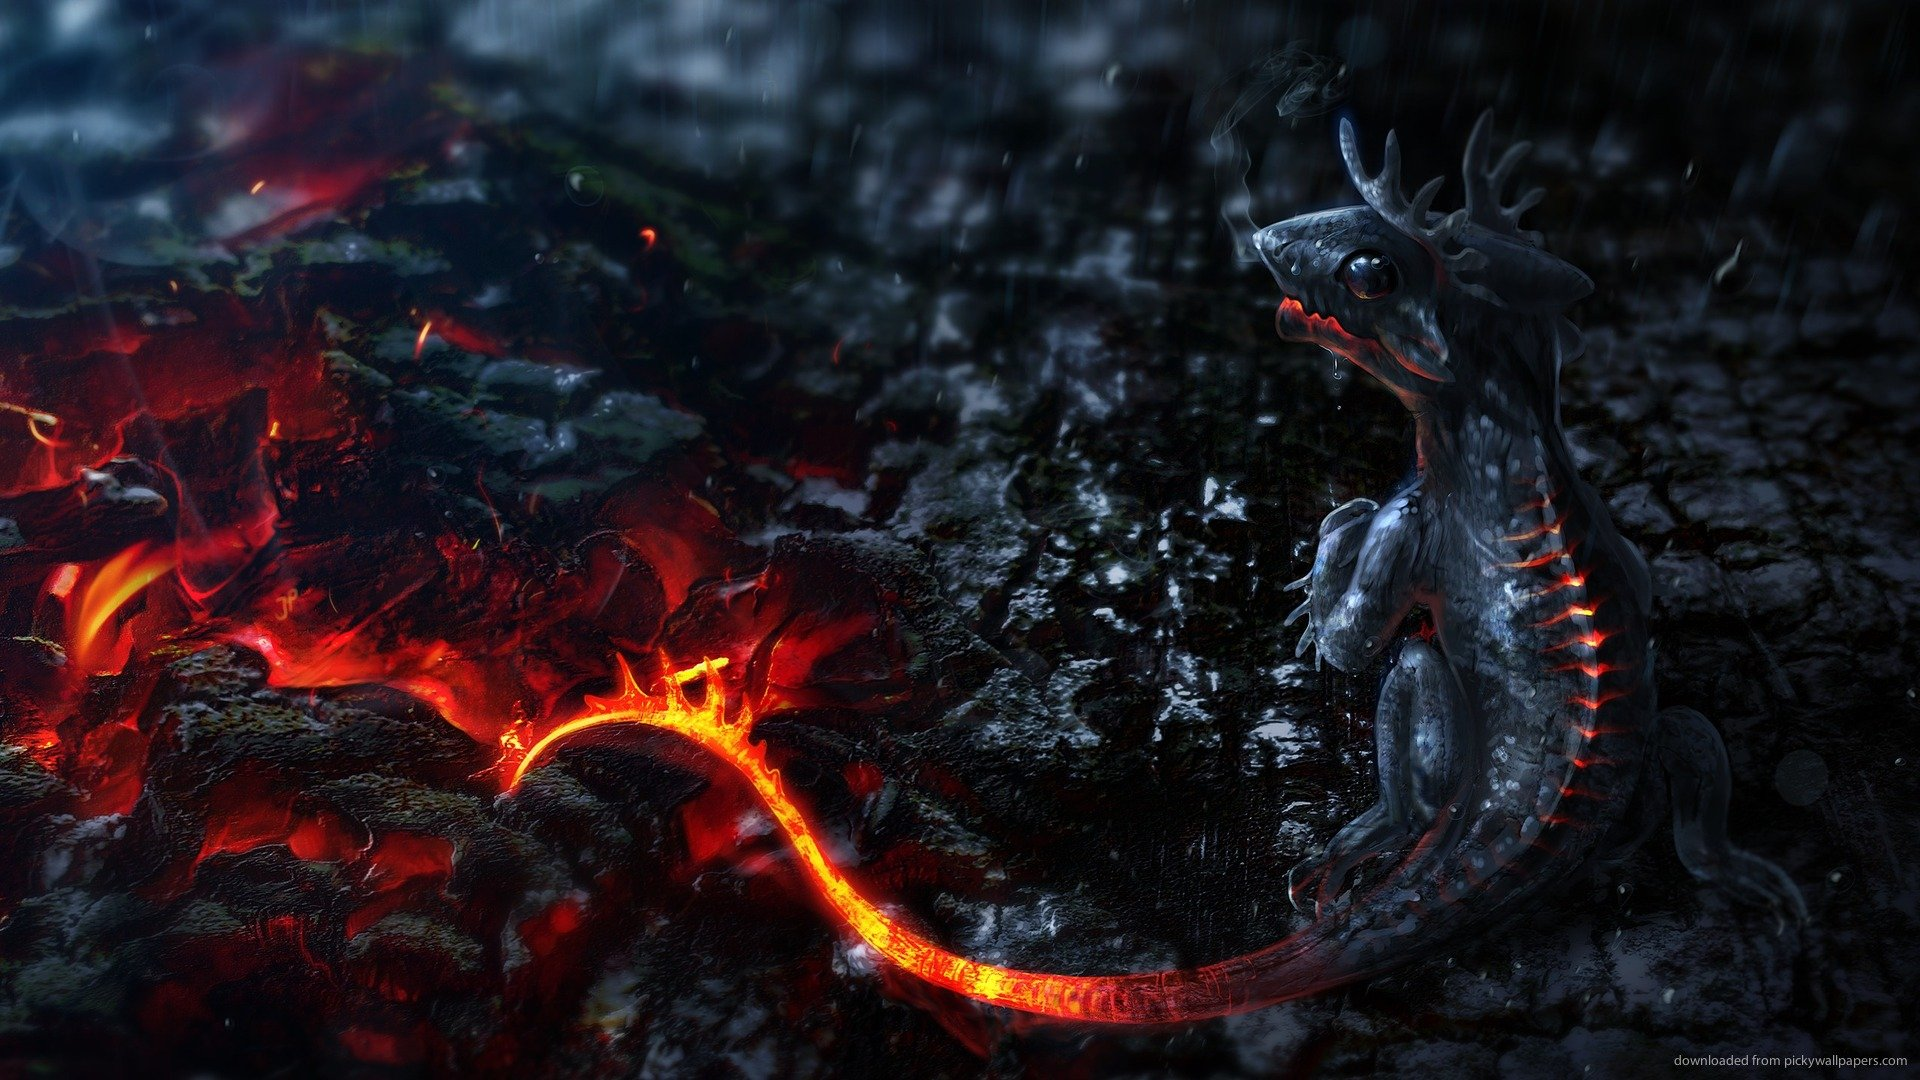 Hd wallpaper 1920x1080 dragon